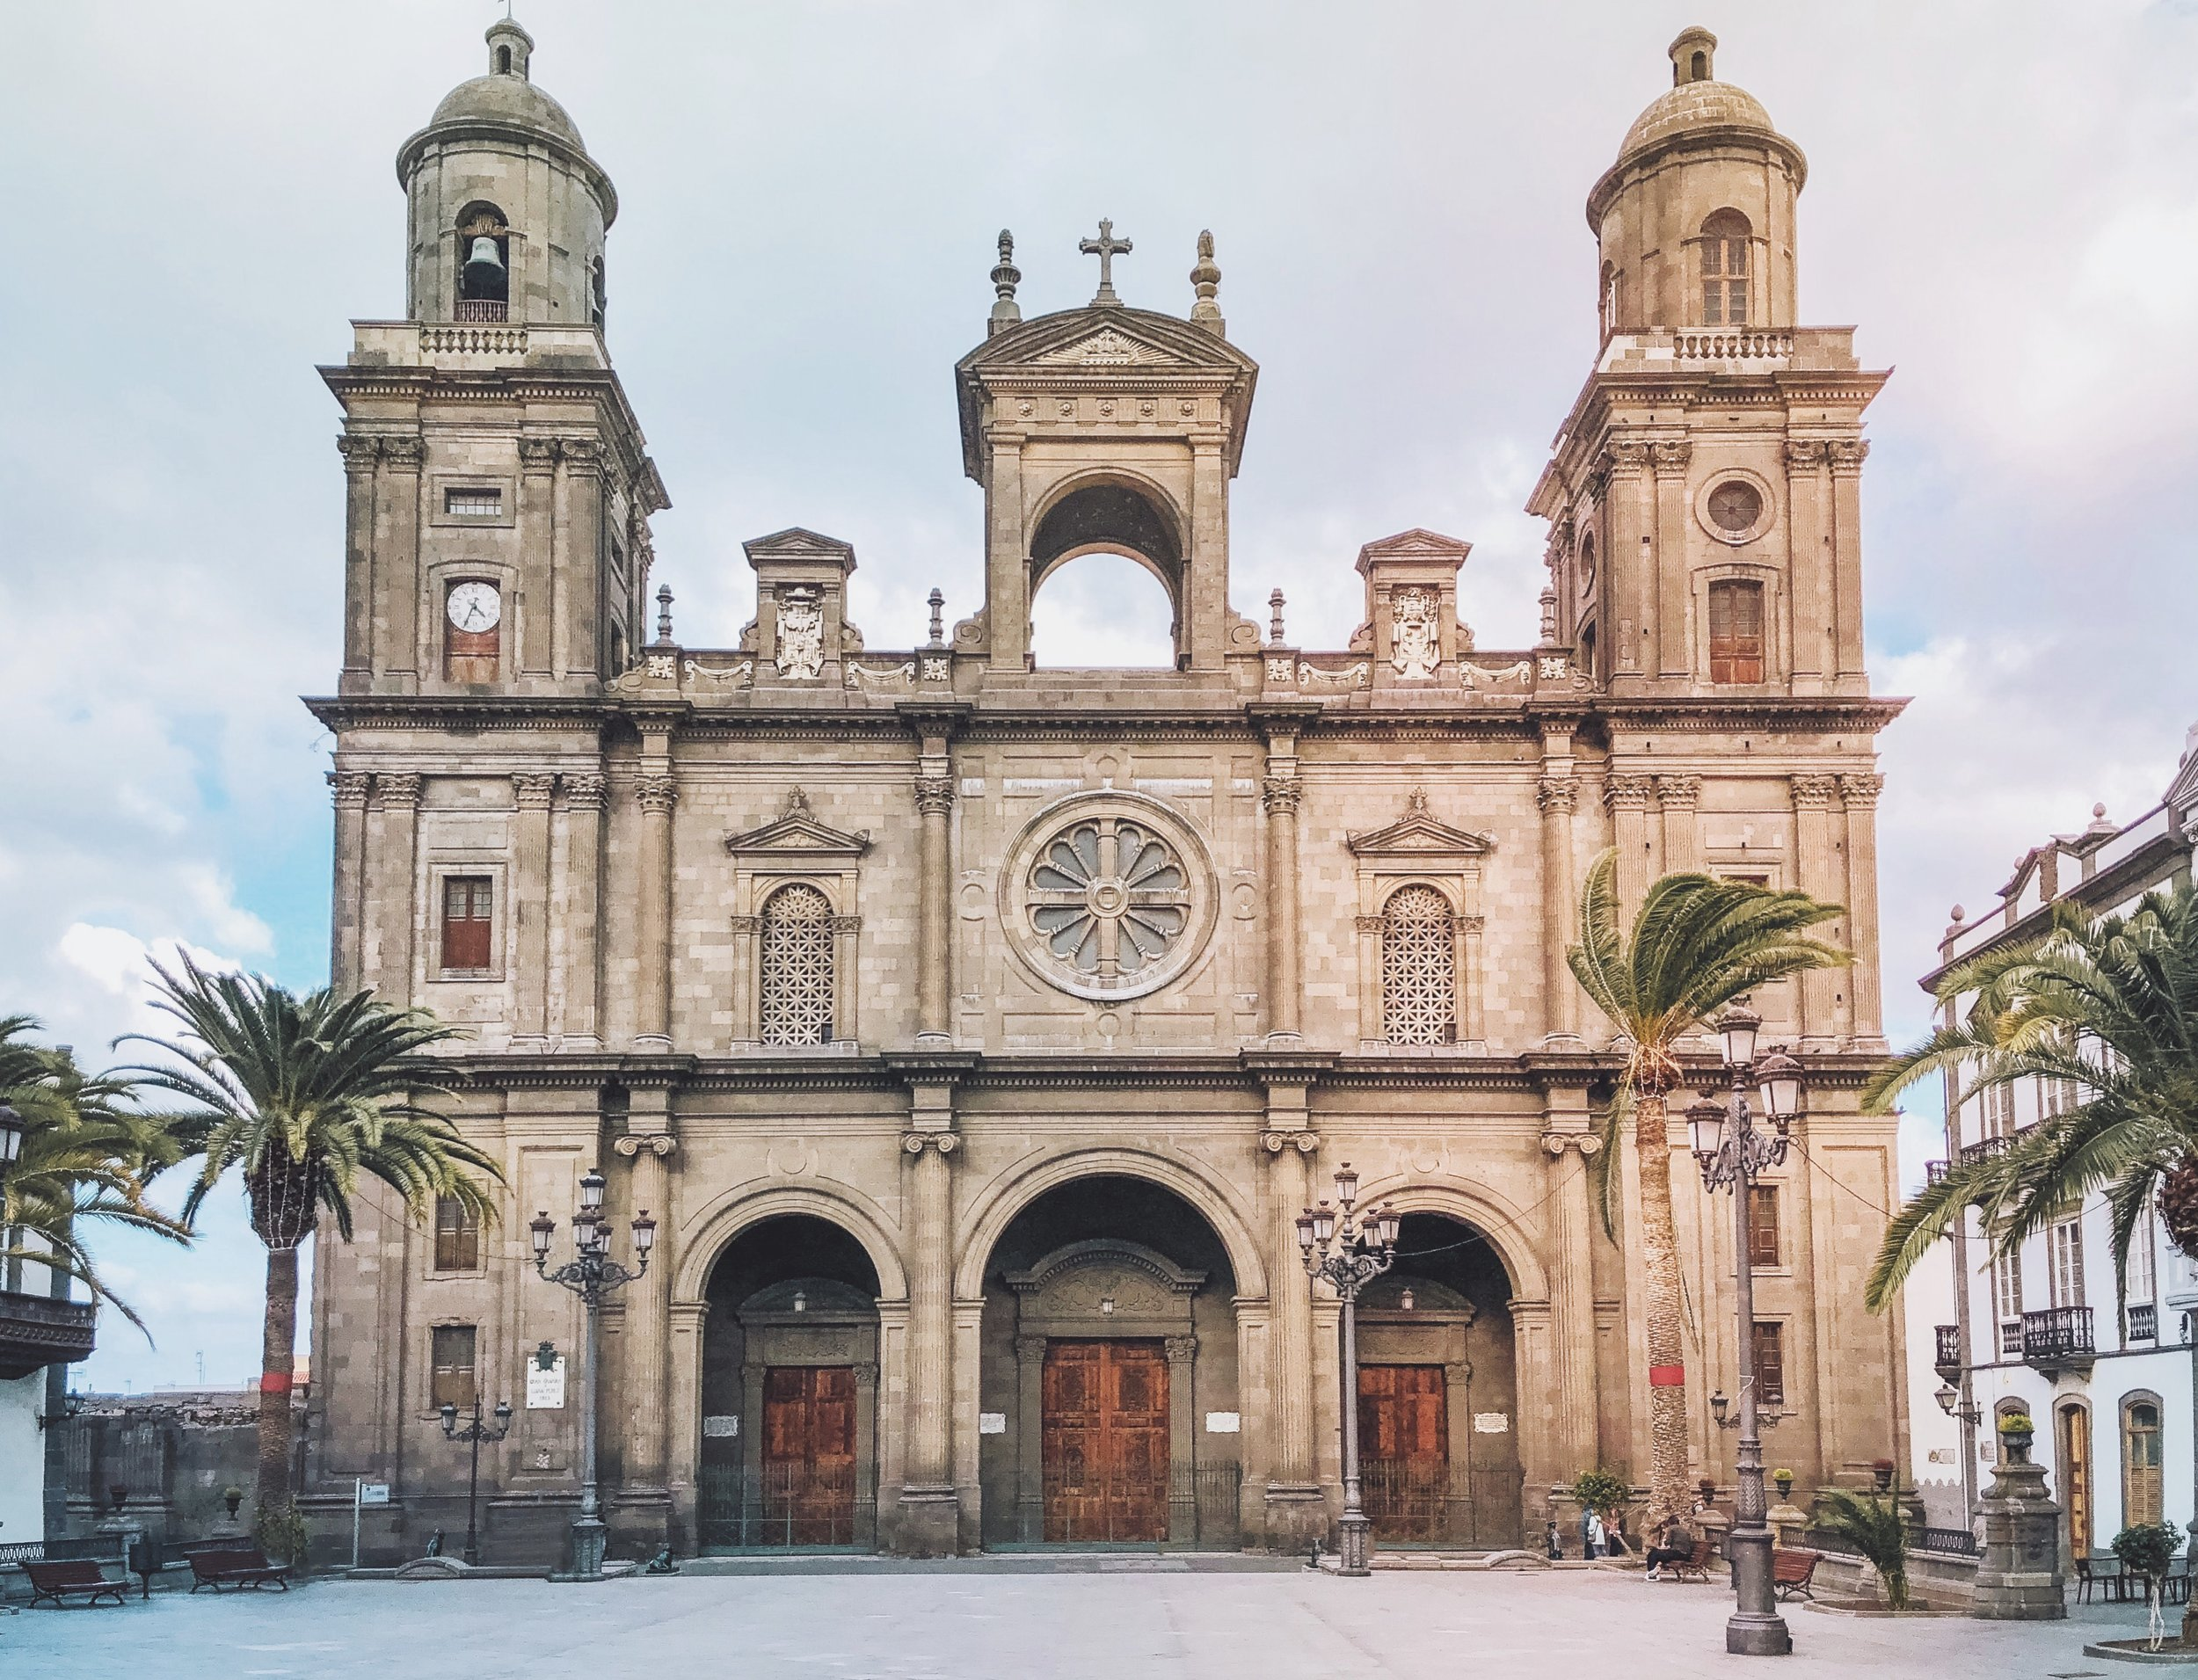 The Cathedral of Santa Ana in all her beauty